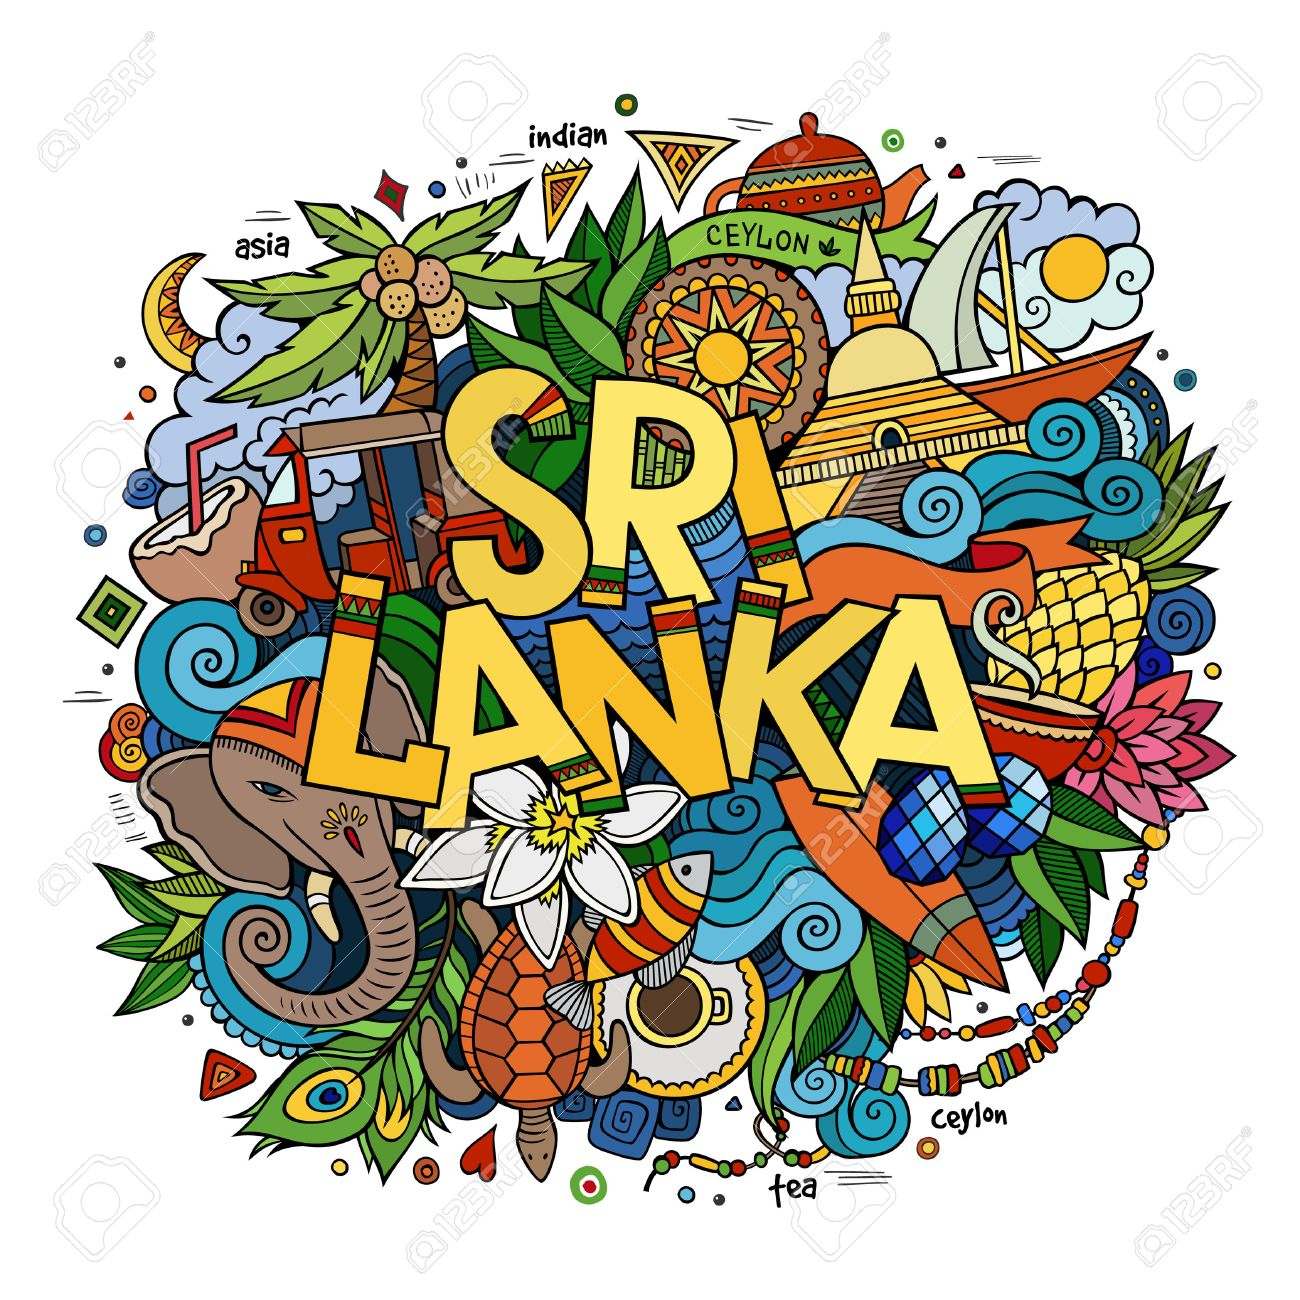 Sri Lanka hand lettering and doodles elements and symbols background. Vector hand drawn colorful illustration - 49421414